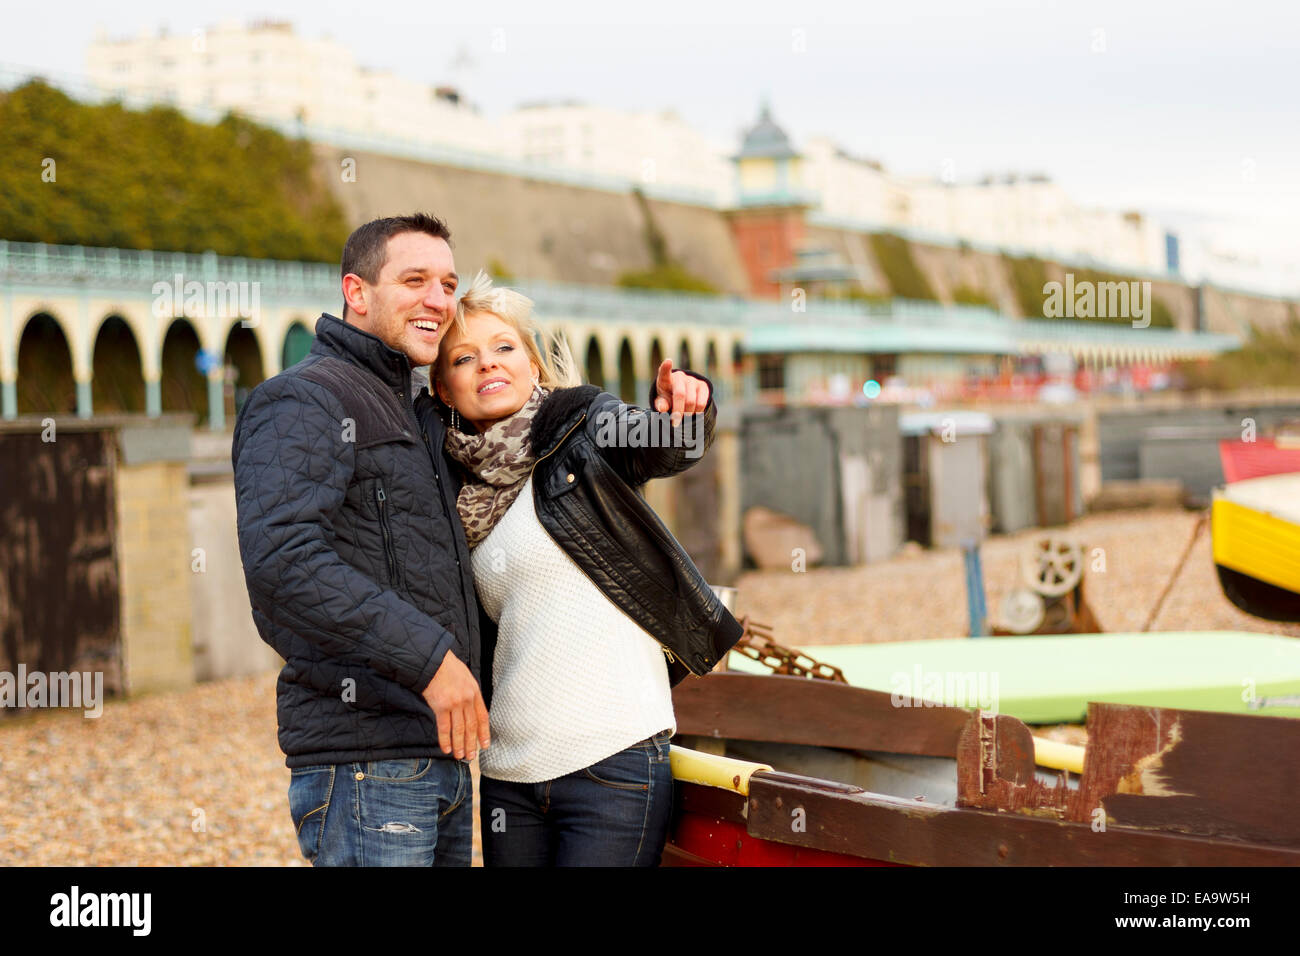 A couple enjoying a day out at the British seaside in Brighton in warm winter clothing Stock Photo